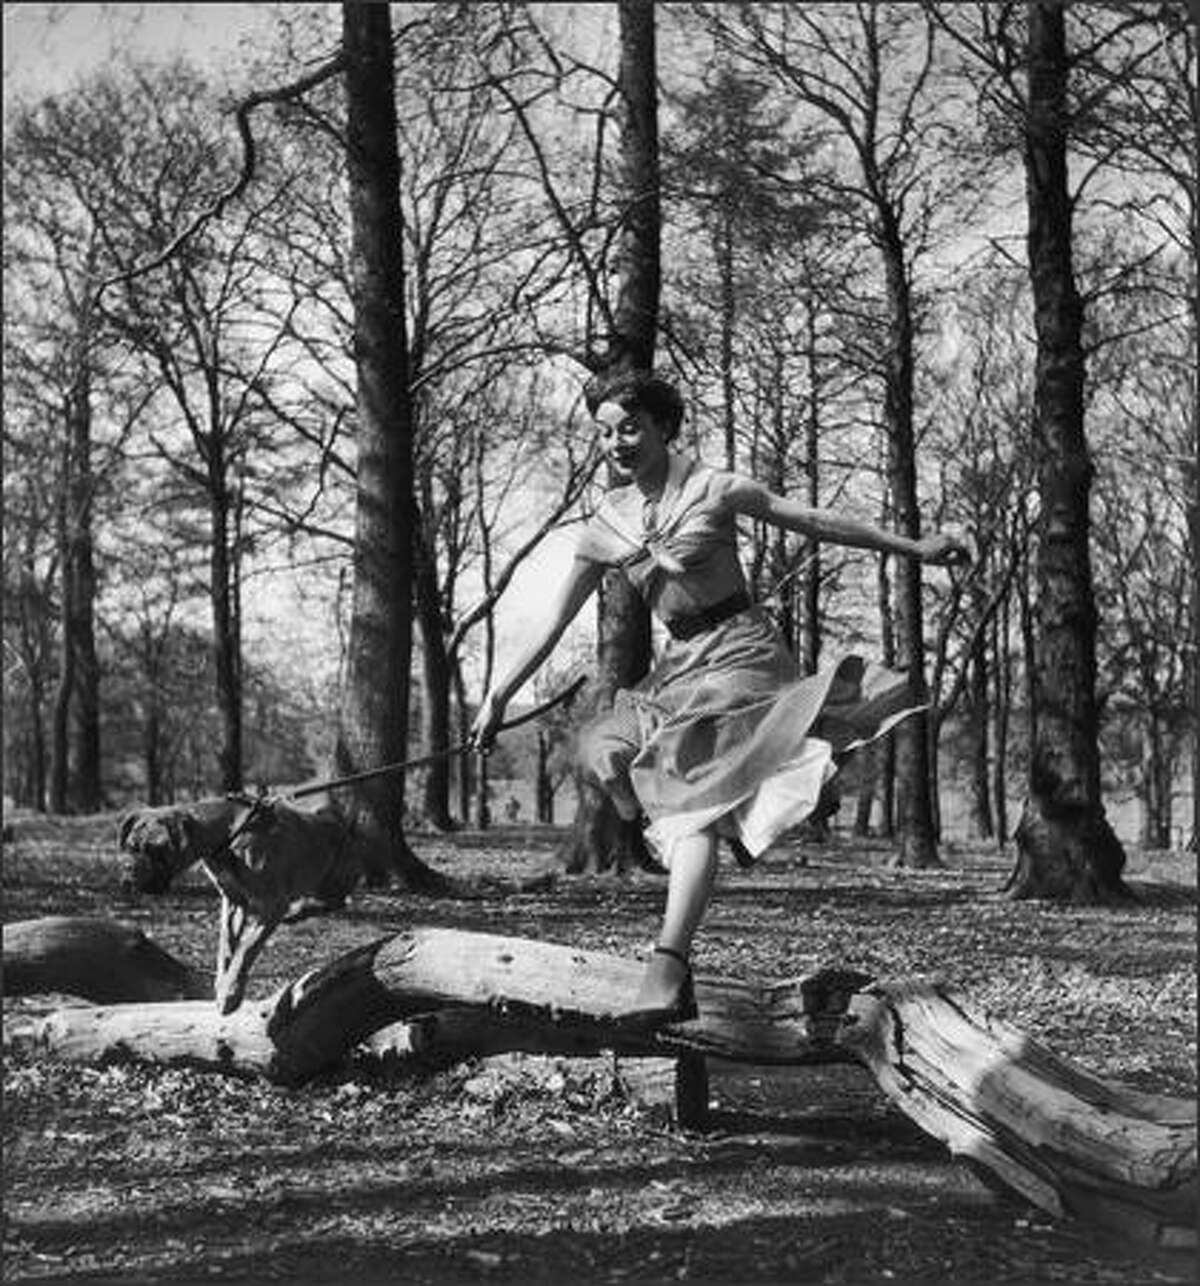 Audrey Hepburn leaping in a park in the 1950s.